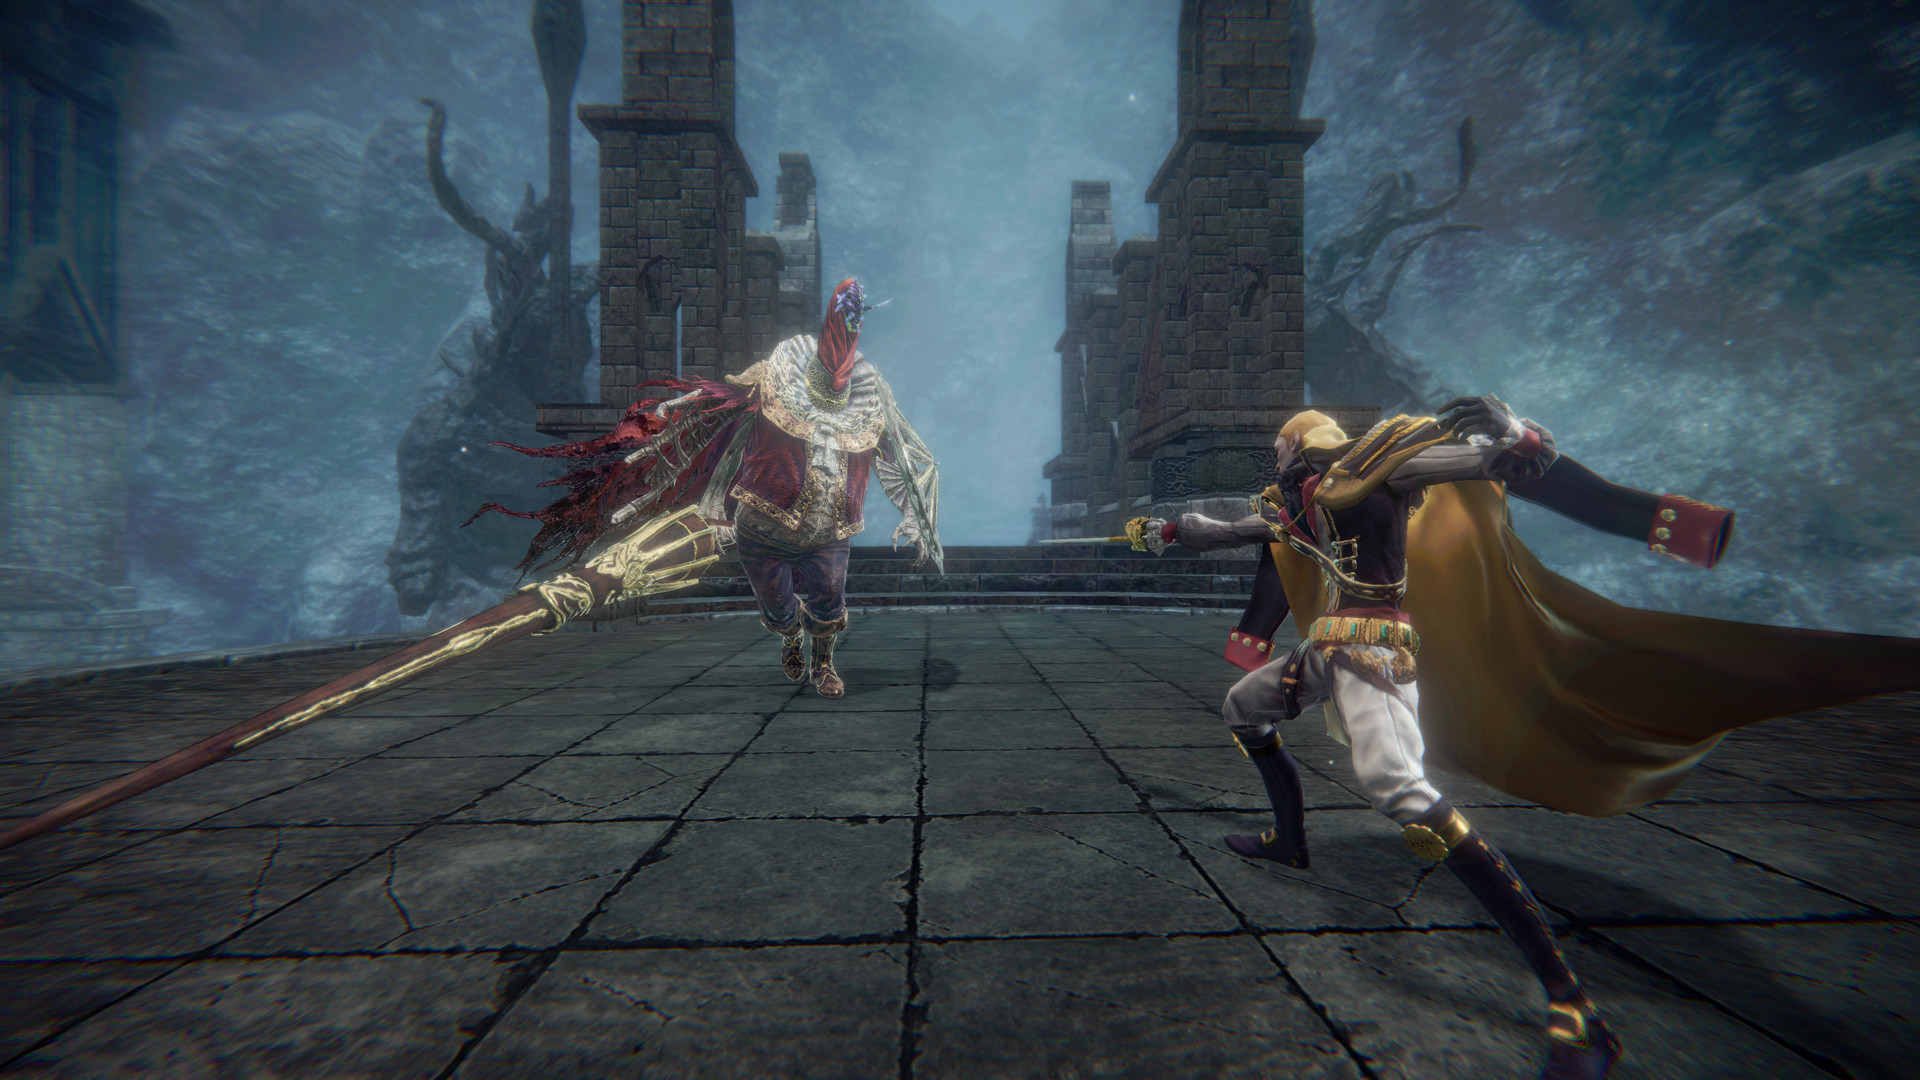 pascals-wager-definitive-edition-pc-screenshot-3